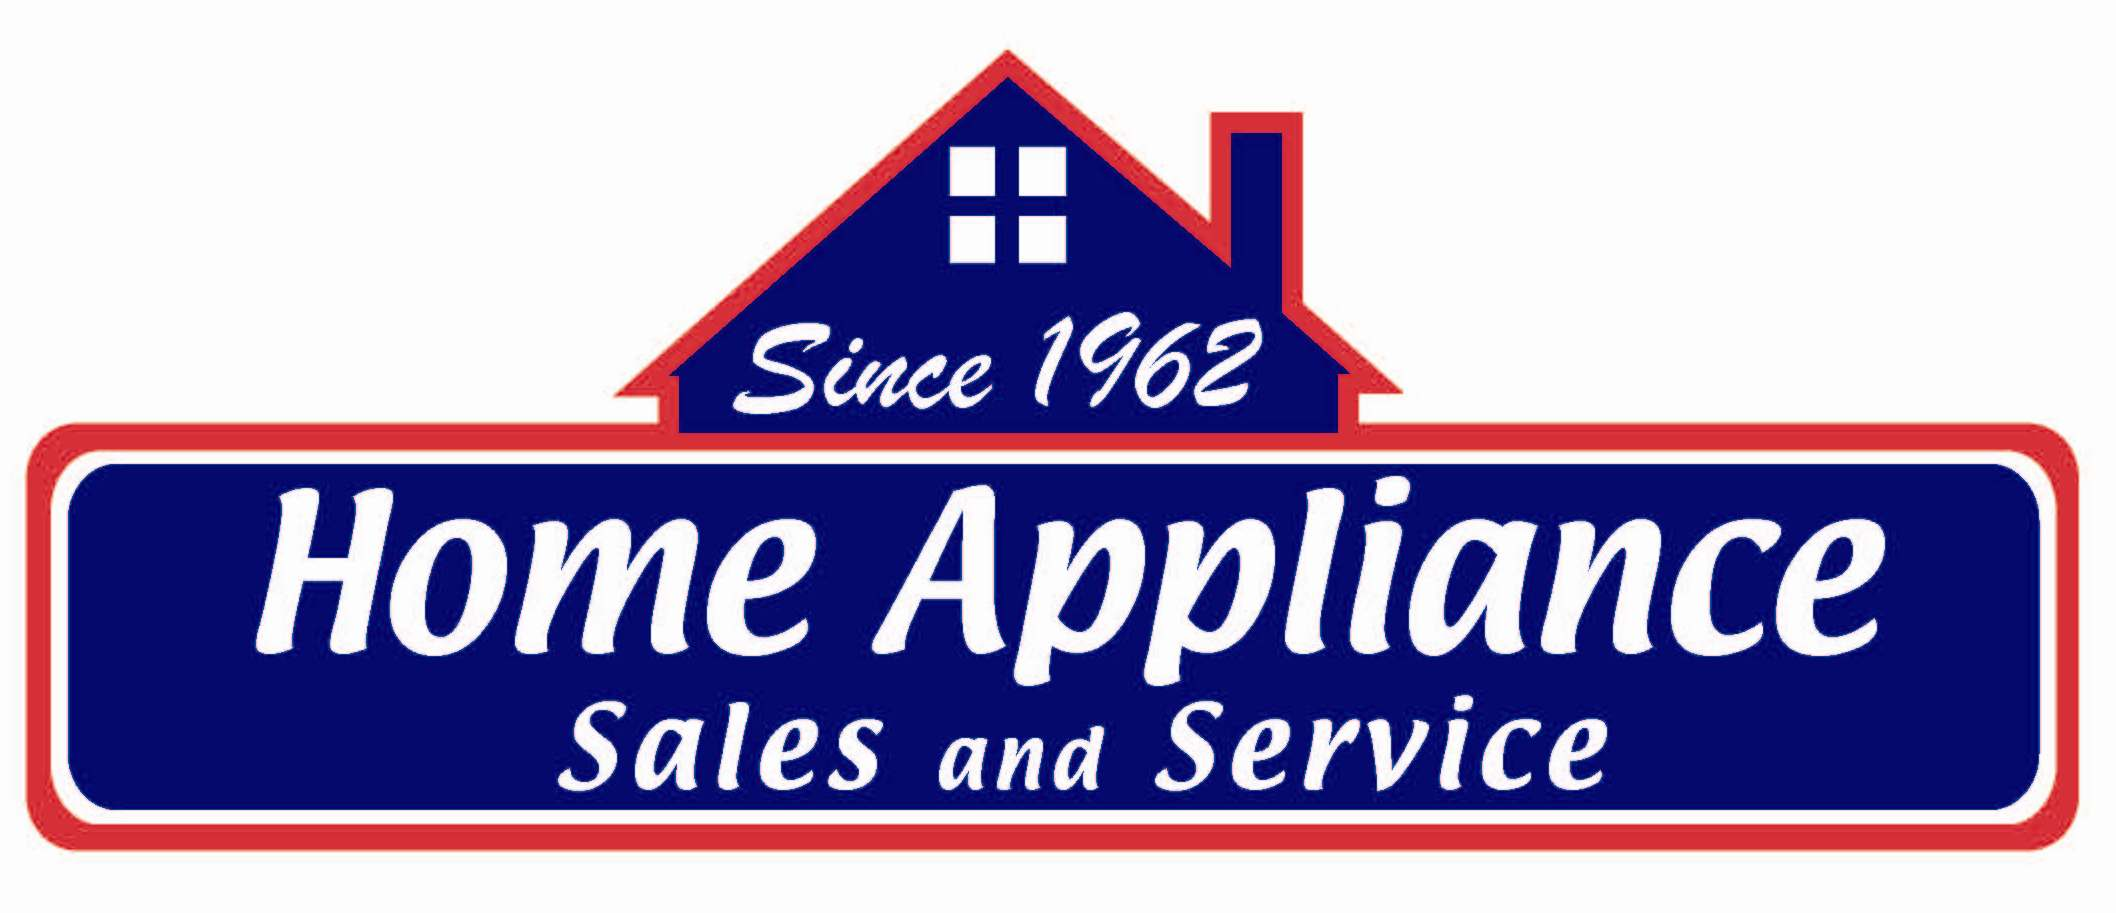 Image result for home appliance sales and services